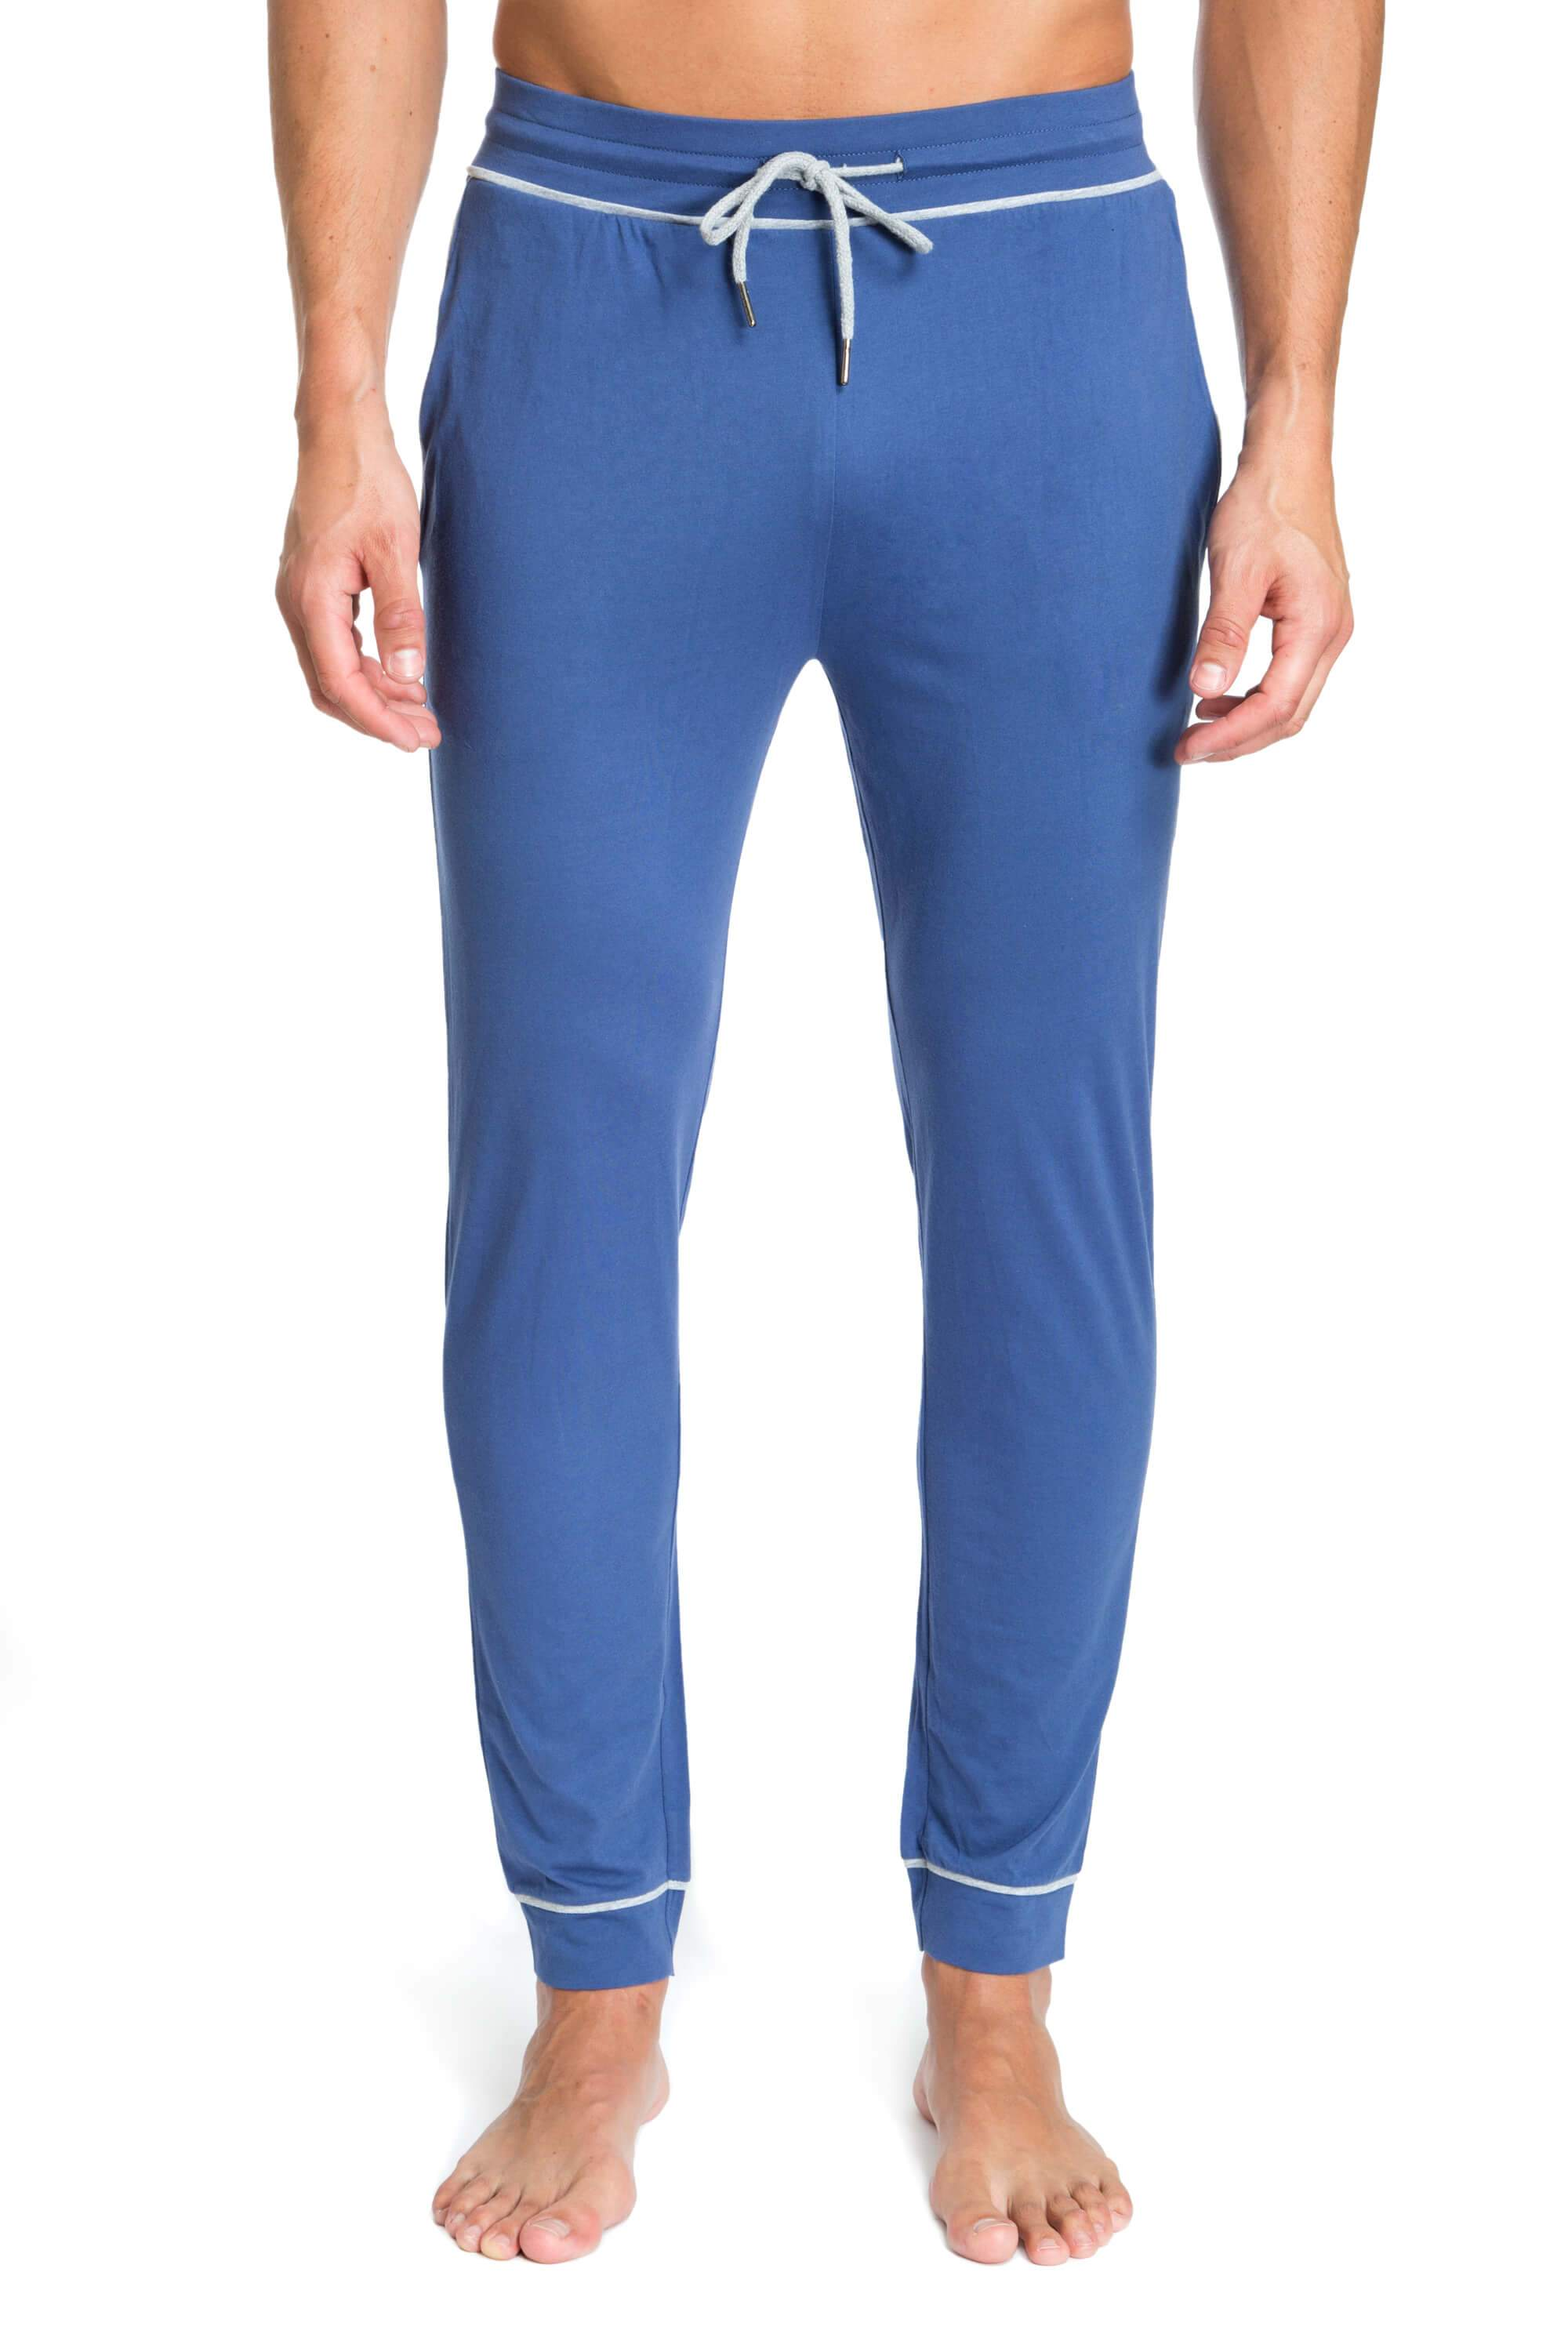 Sky Blue Designer Joggers for Men JLLP1-400 - Front - Jared Lang